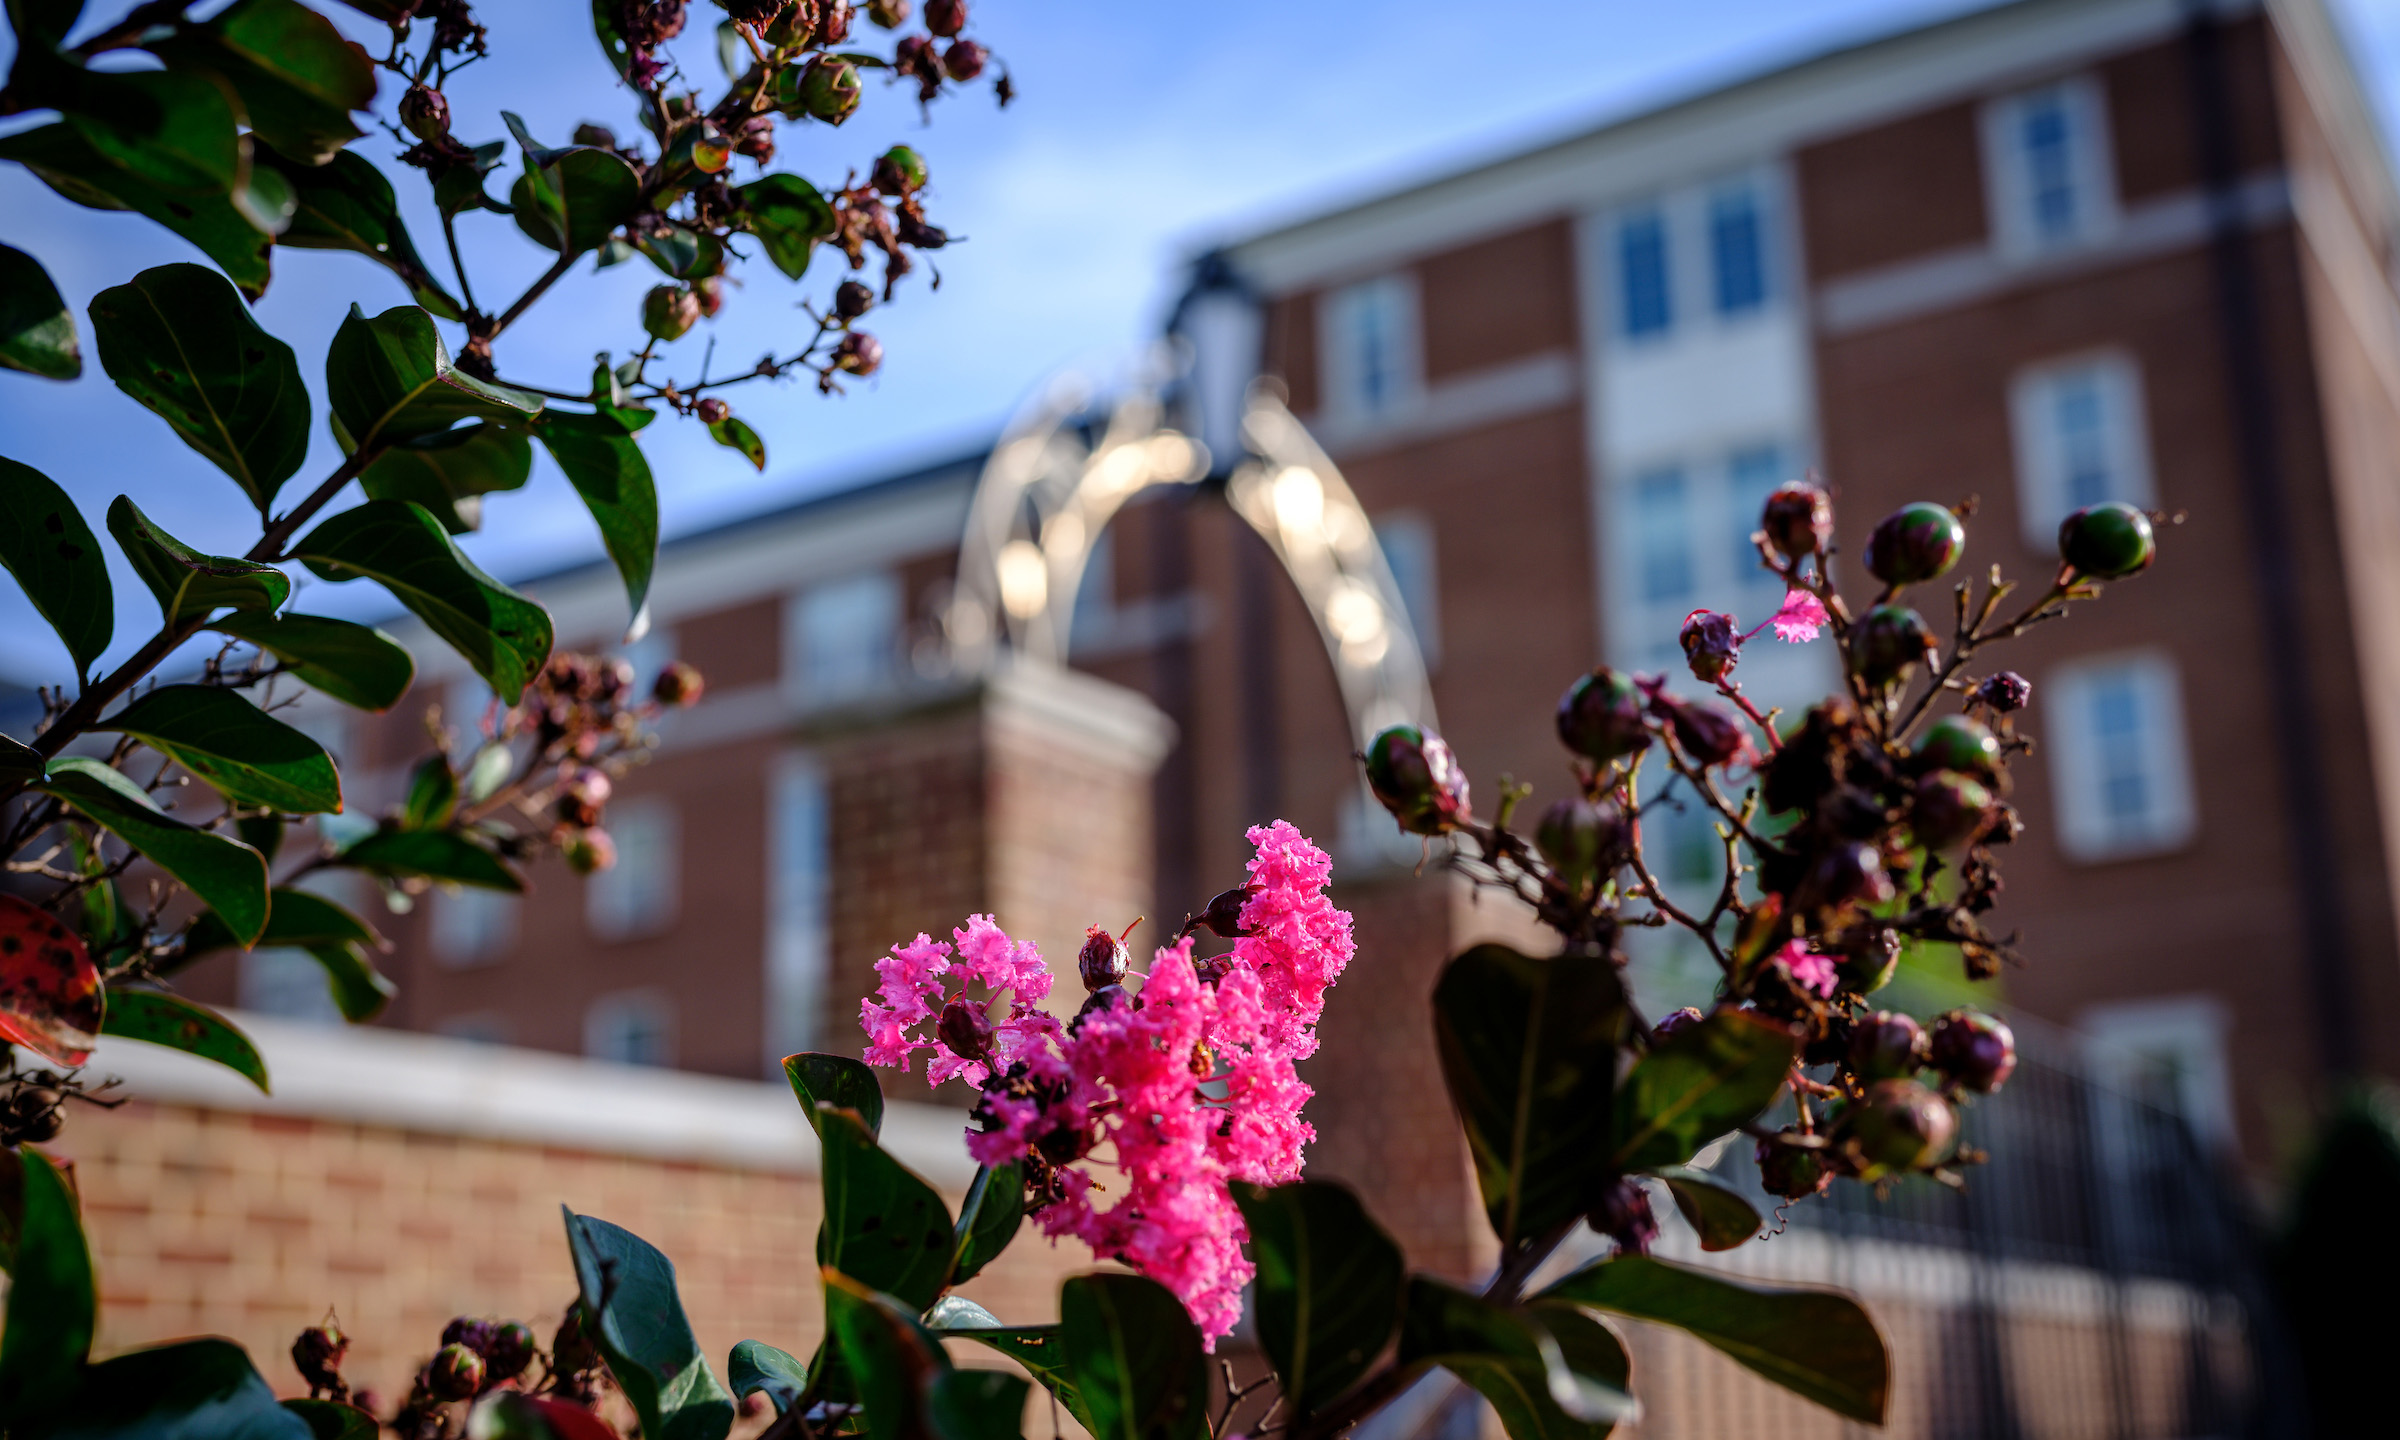 Flowers bloom outside Magnolia Residence Hall